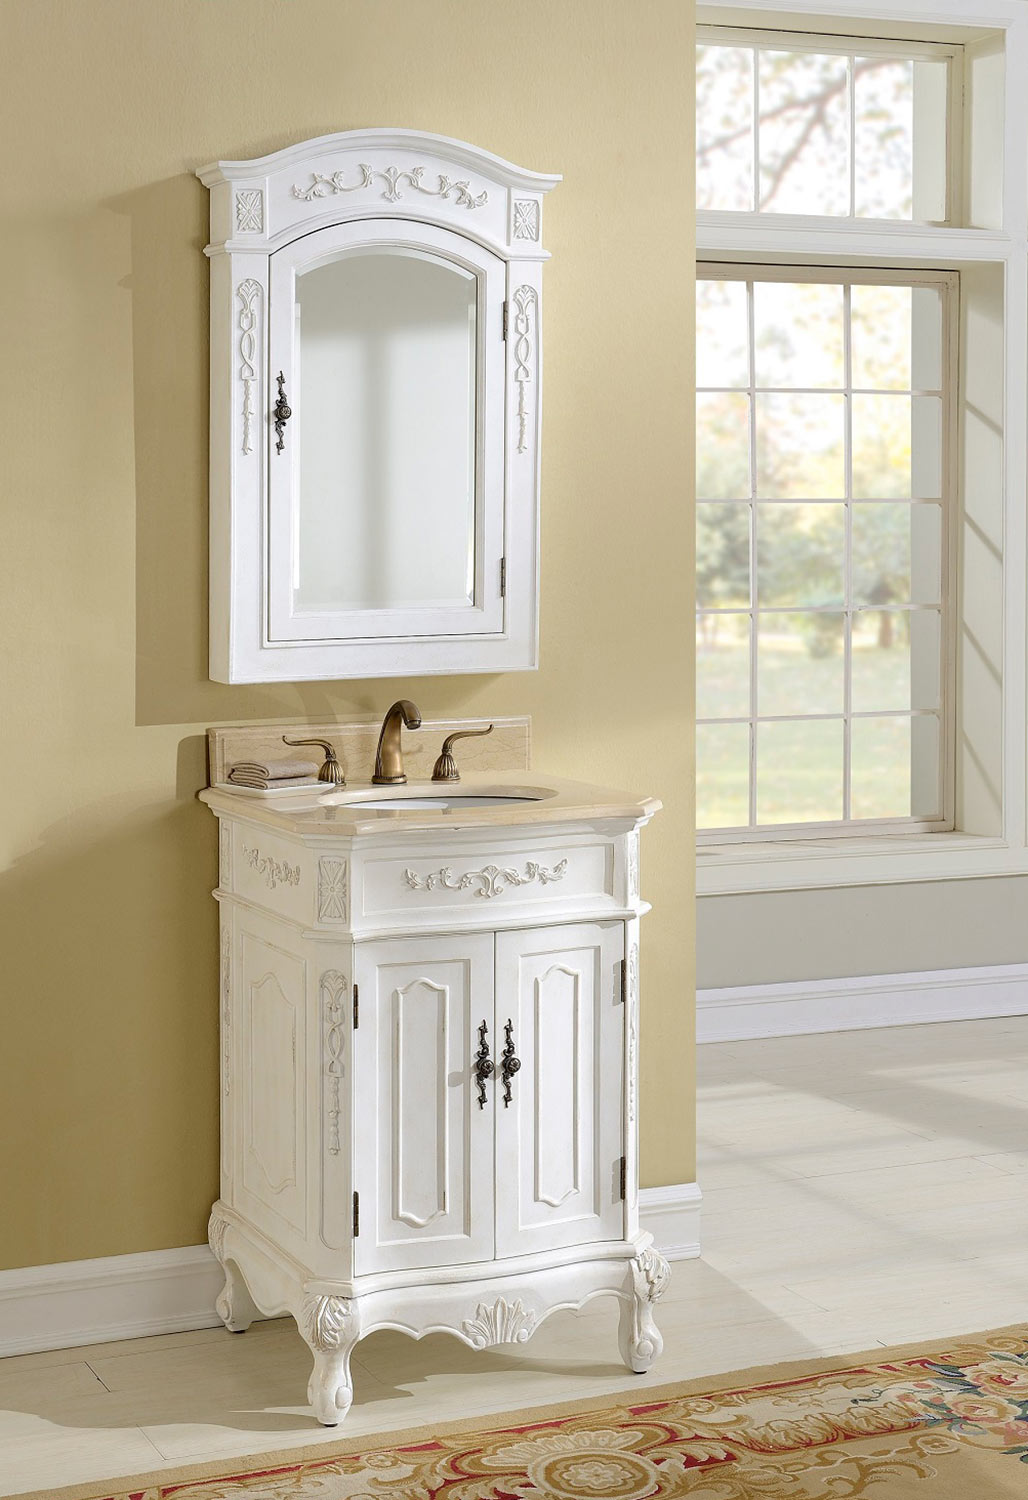 Chelsea Home Cambridge 24-inch Vanity With Medicine Cabinet - Antique White